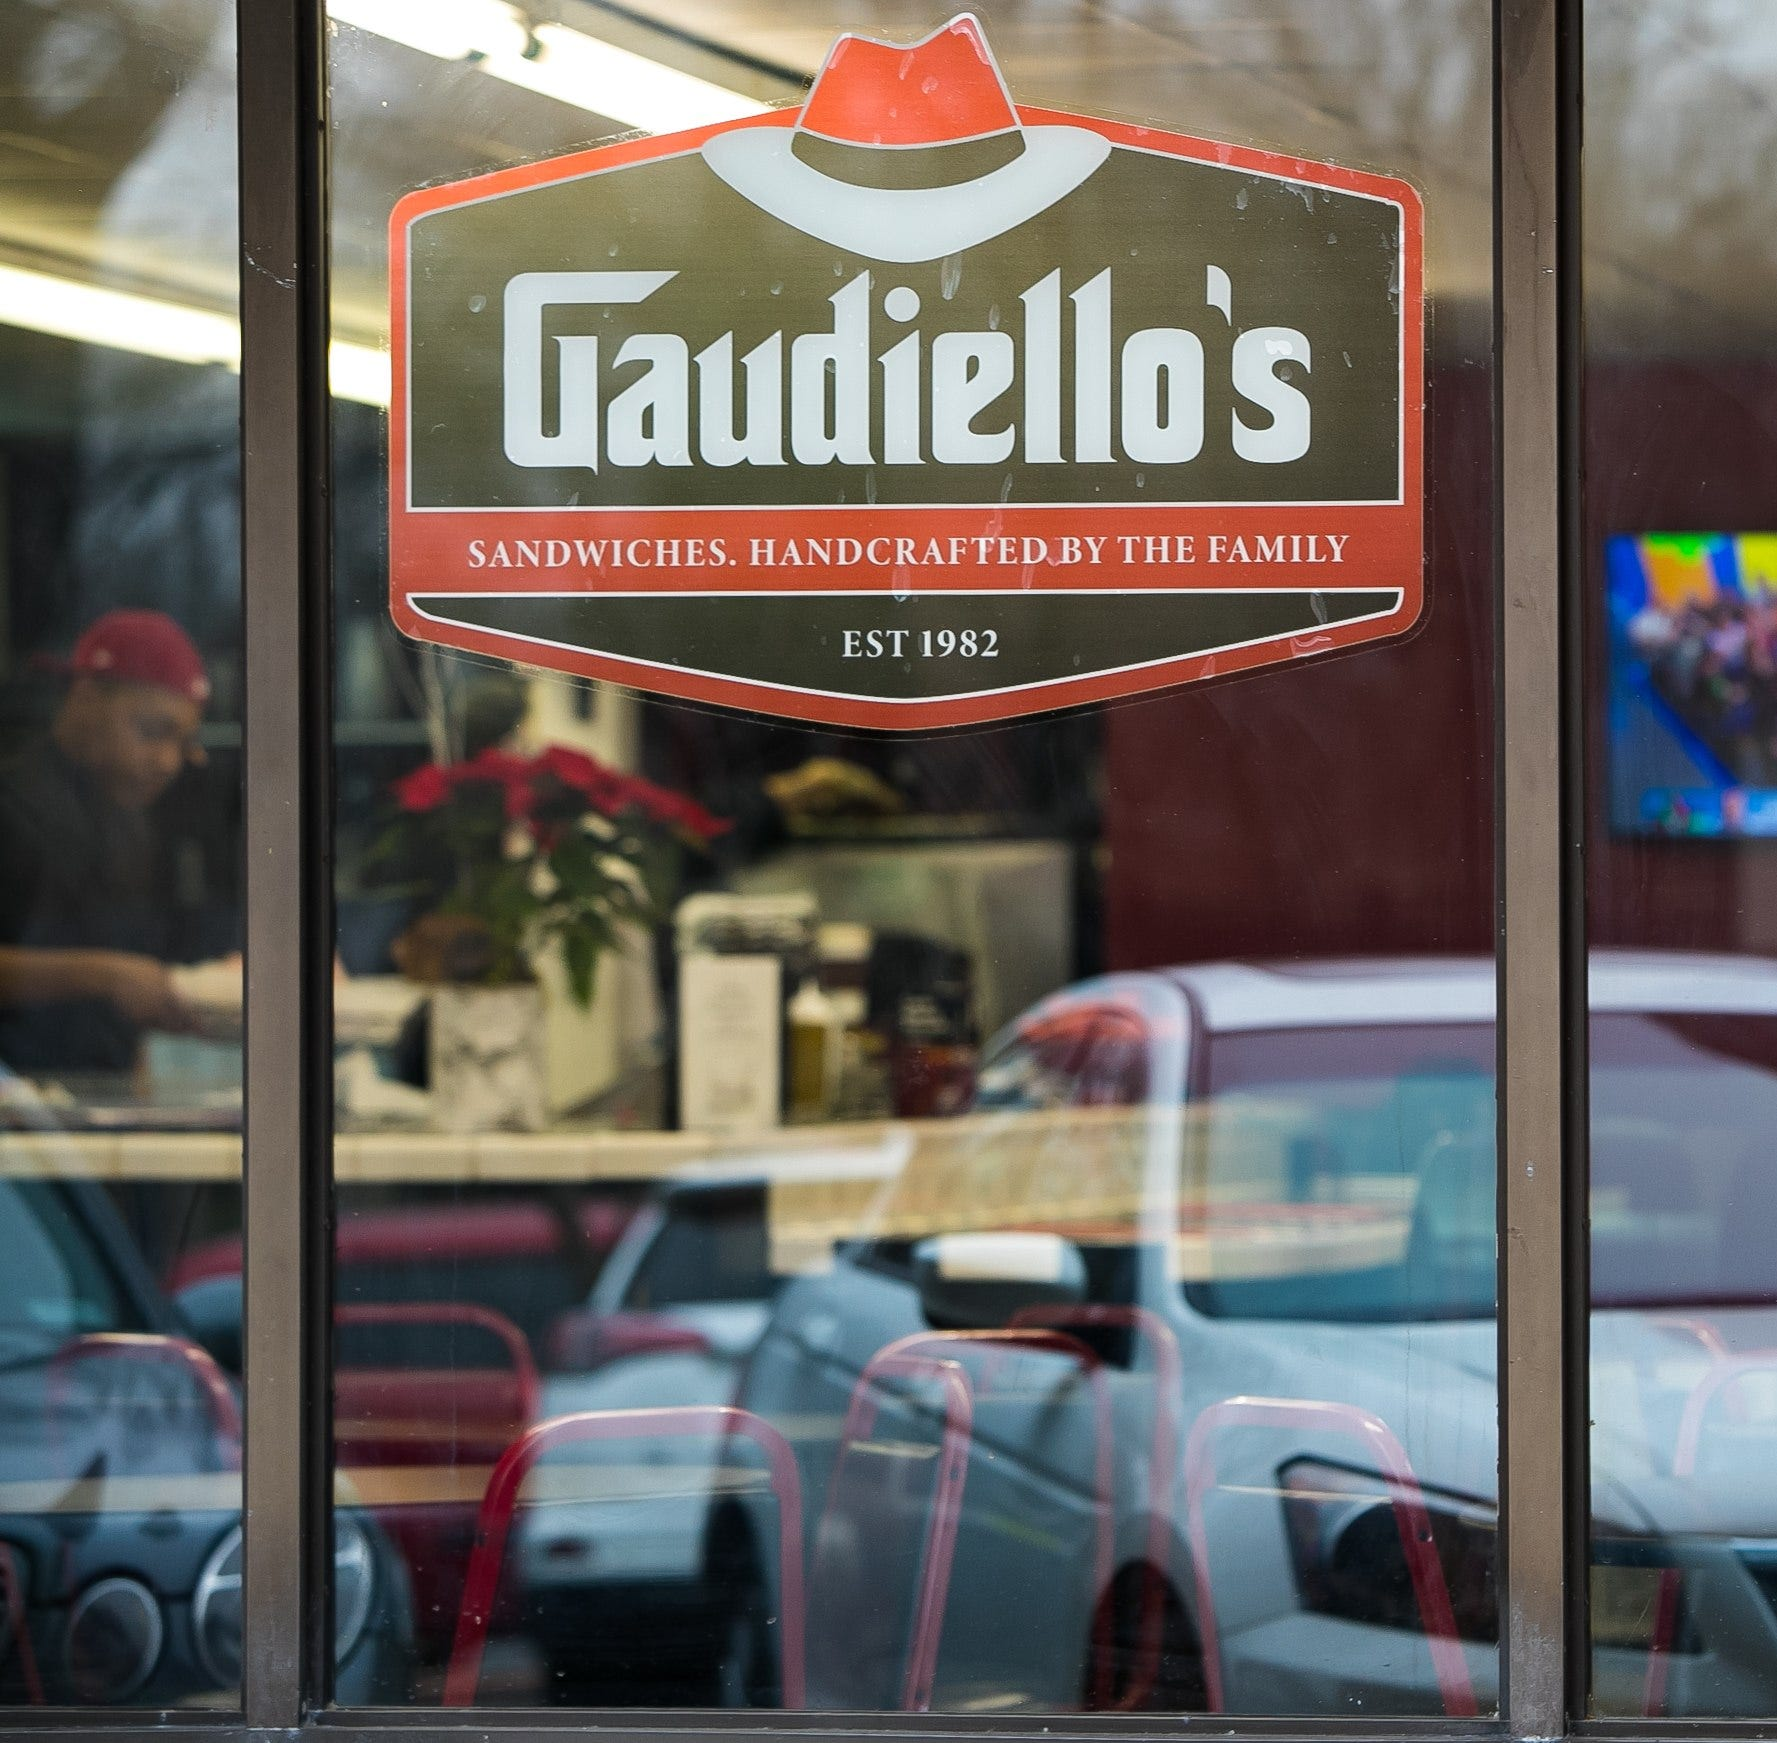 Eric Huntley, who used to be the executive chef of RedFire restaurant in Hockessin, opened up Gaudiello's in Trolley Square.